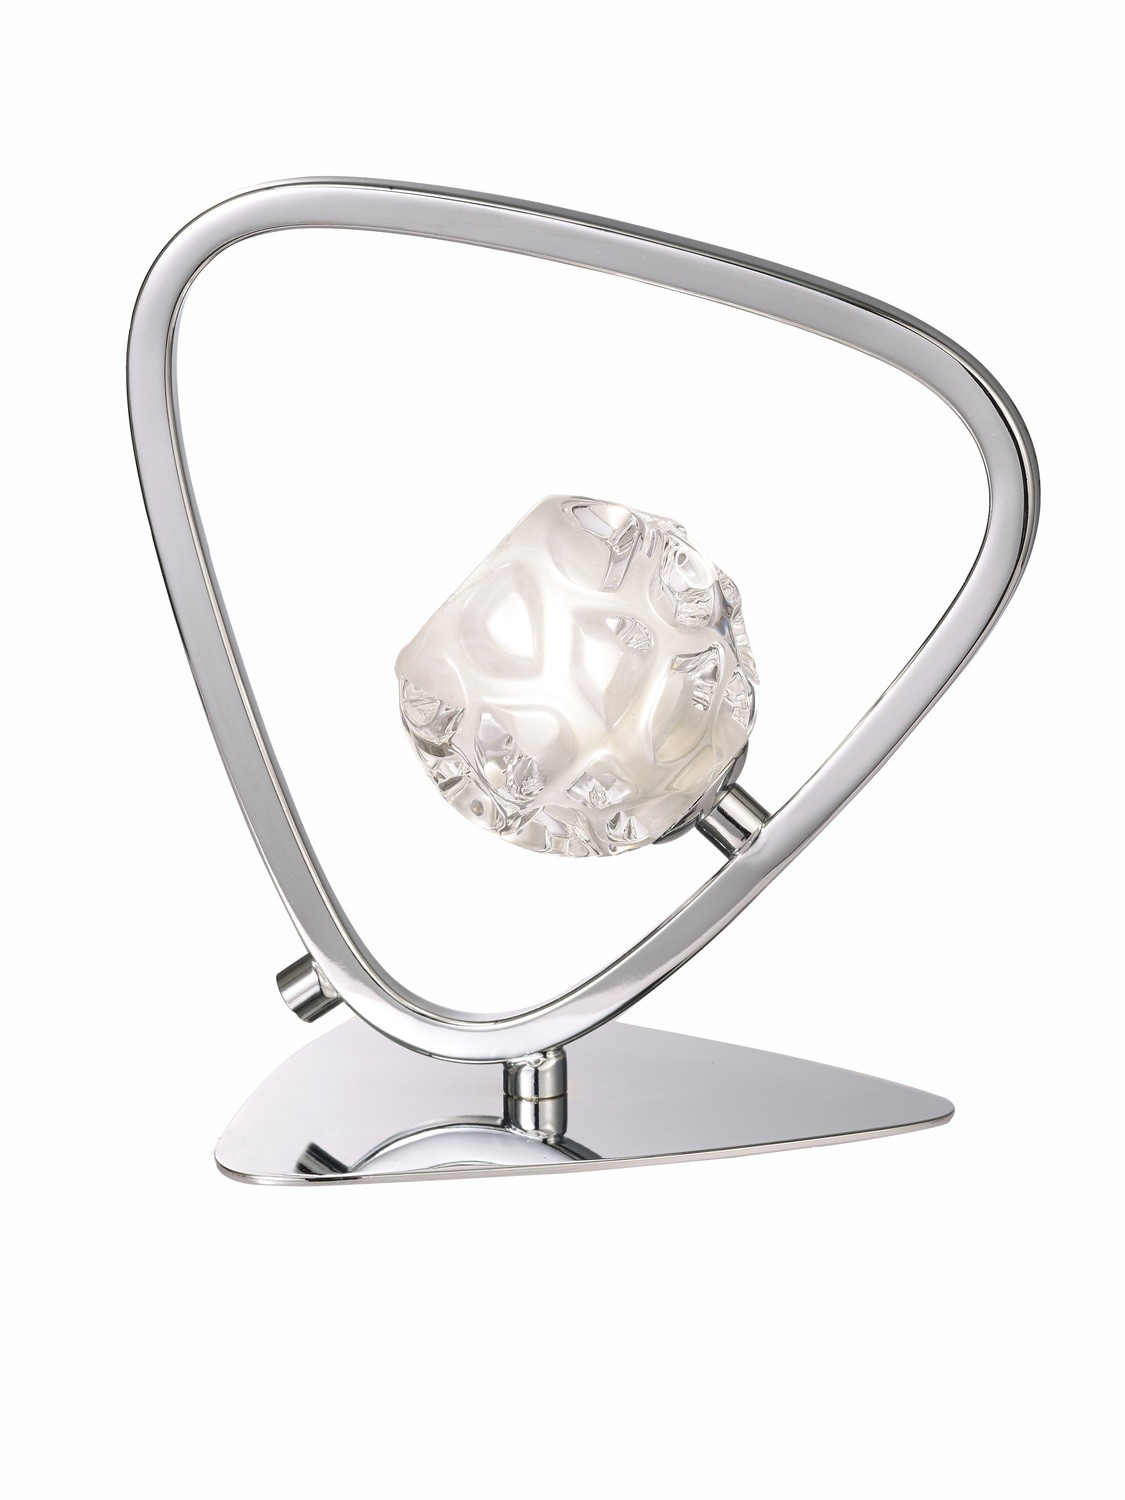 Lux Table Lamp 1 Light G9, Polished Chrome